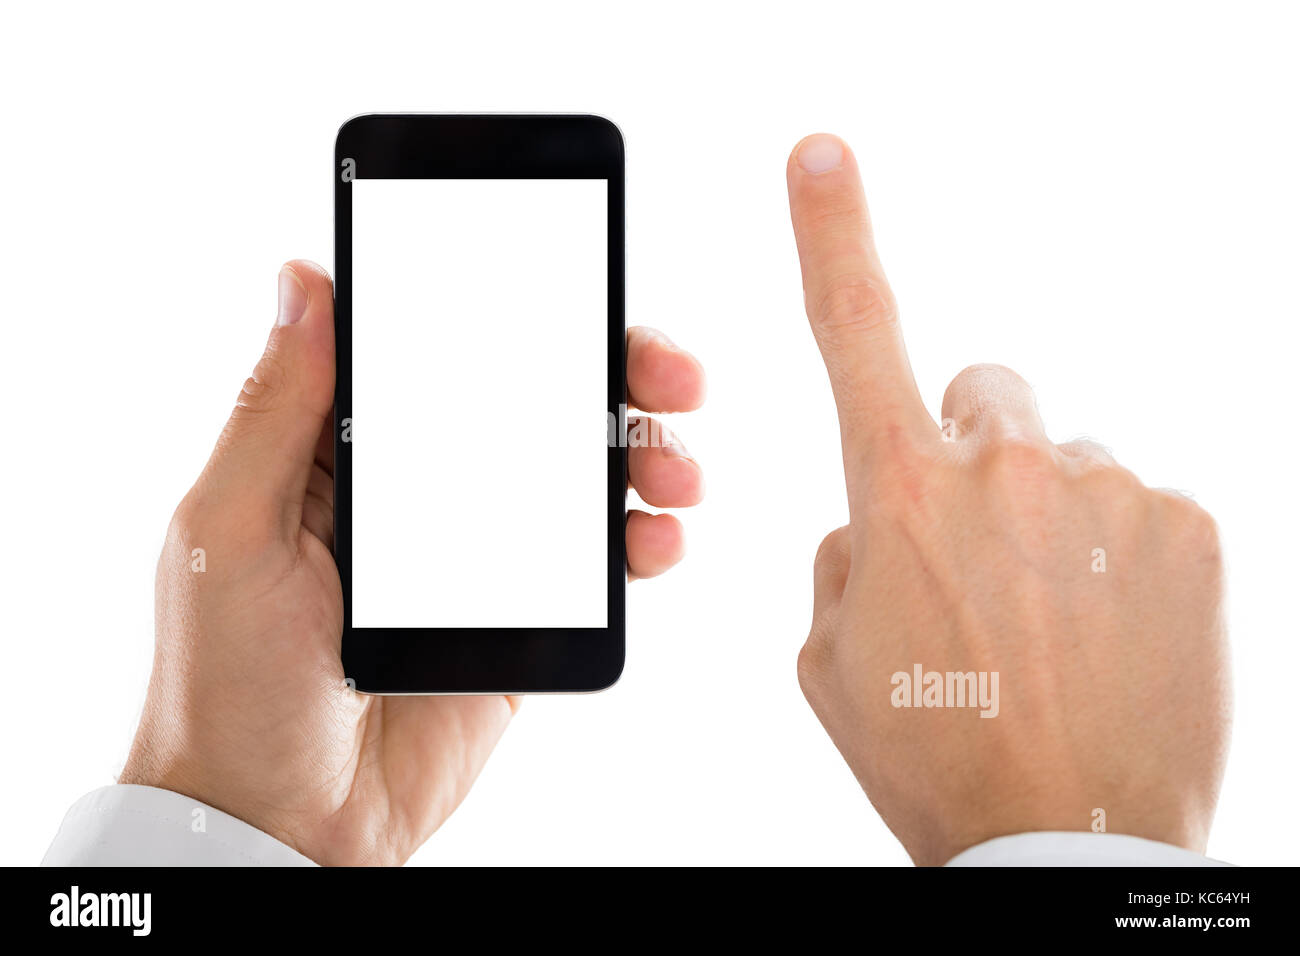 Close-up Of Man's Hand Holding Mobile Phone Against White Background - Stock Image